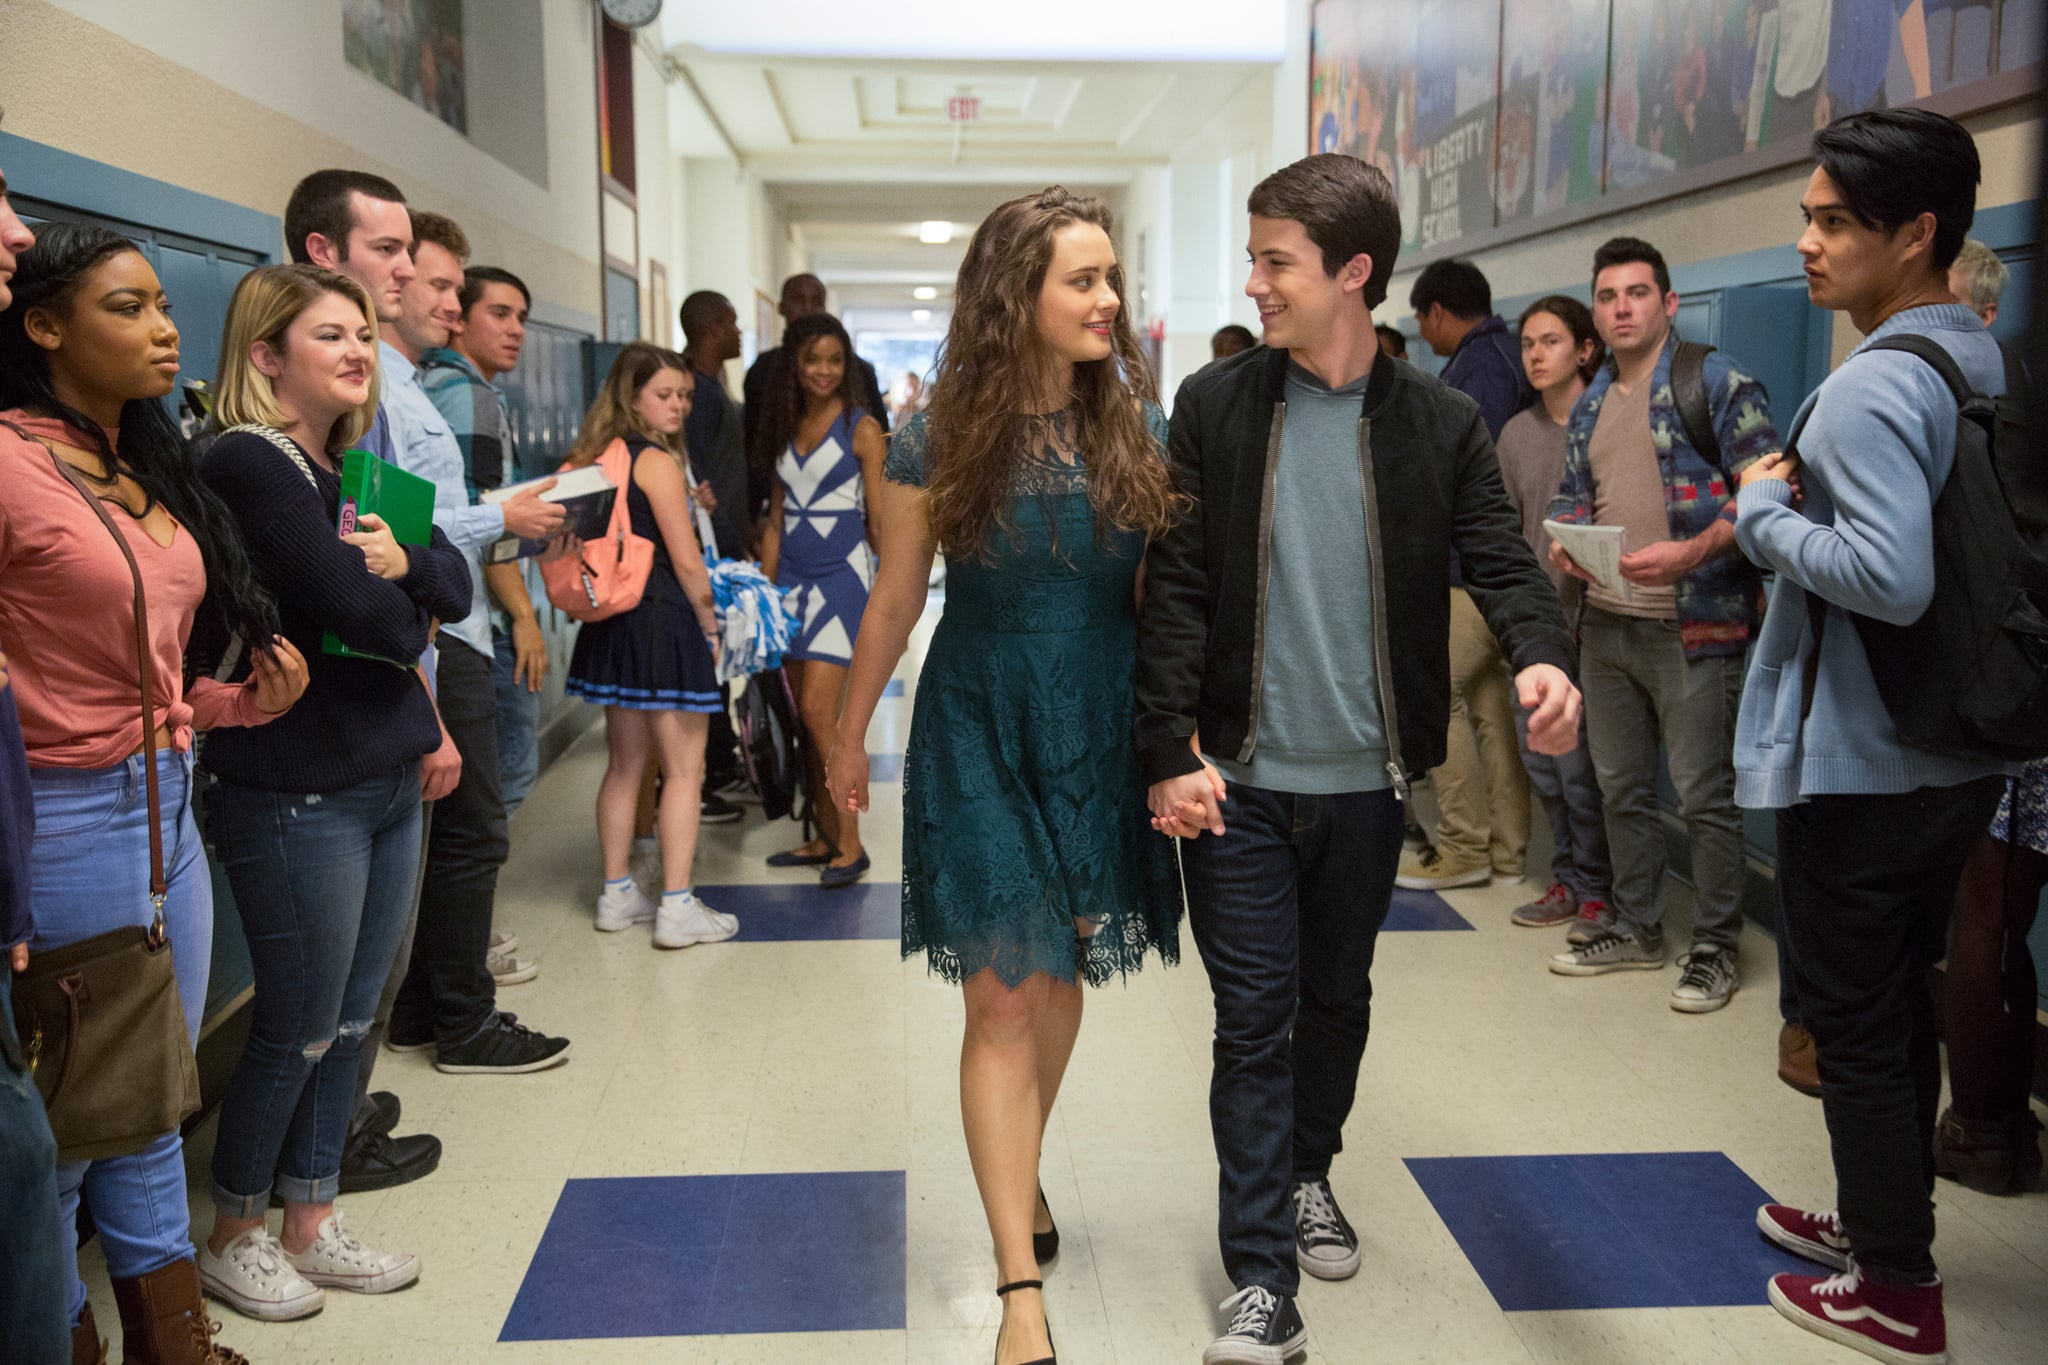 13 REASONS WHY, (aka THIRTEEN REASONS WHY), Katherine Langford, Dylan Minnette in 'Tape 6, Side A', (Season 1, Episode 111, aired March 31, 2017), ph: Beth Dubber / Netflix / courtesy Everett Collection